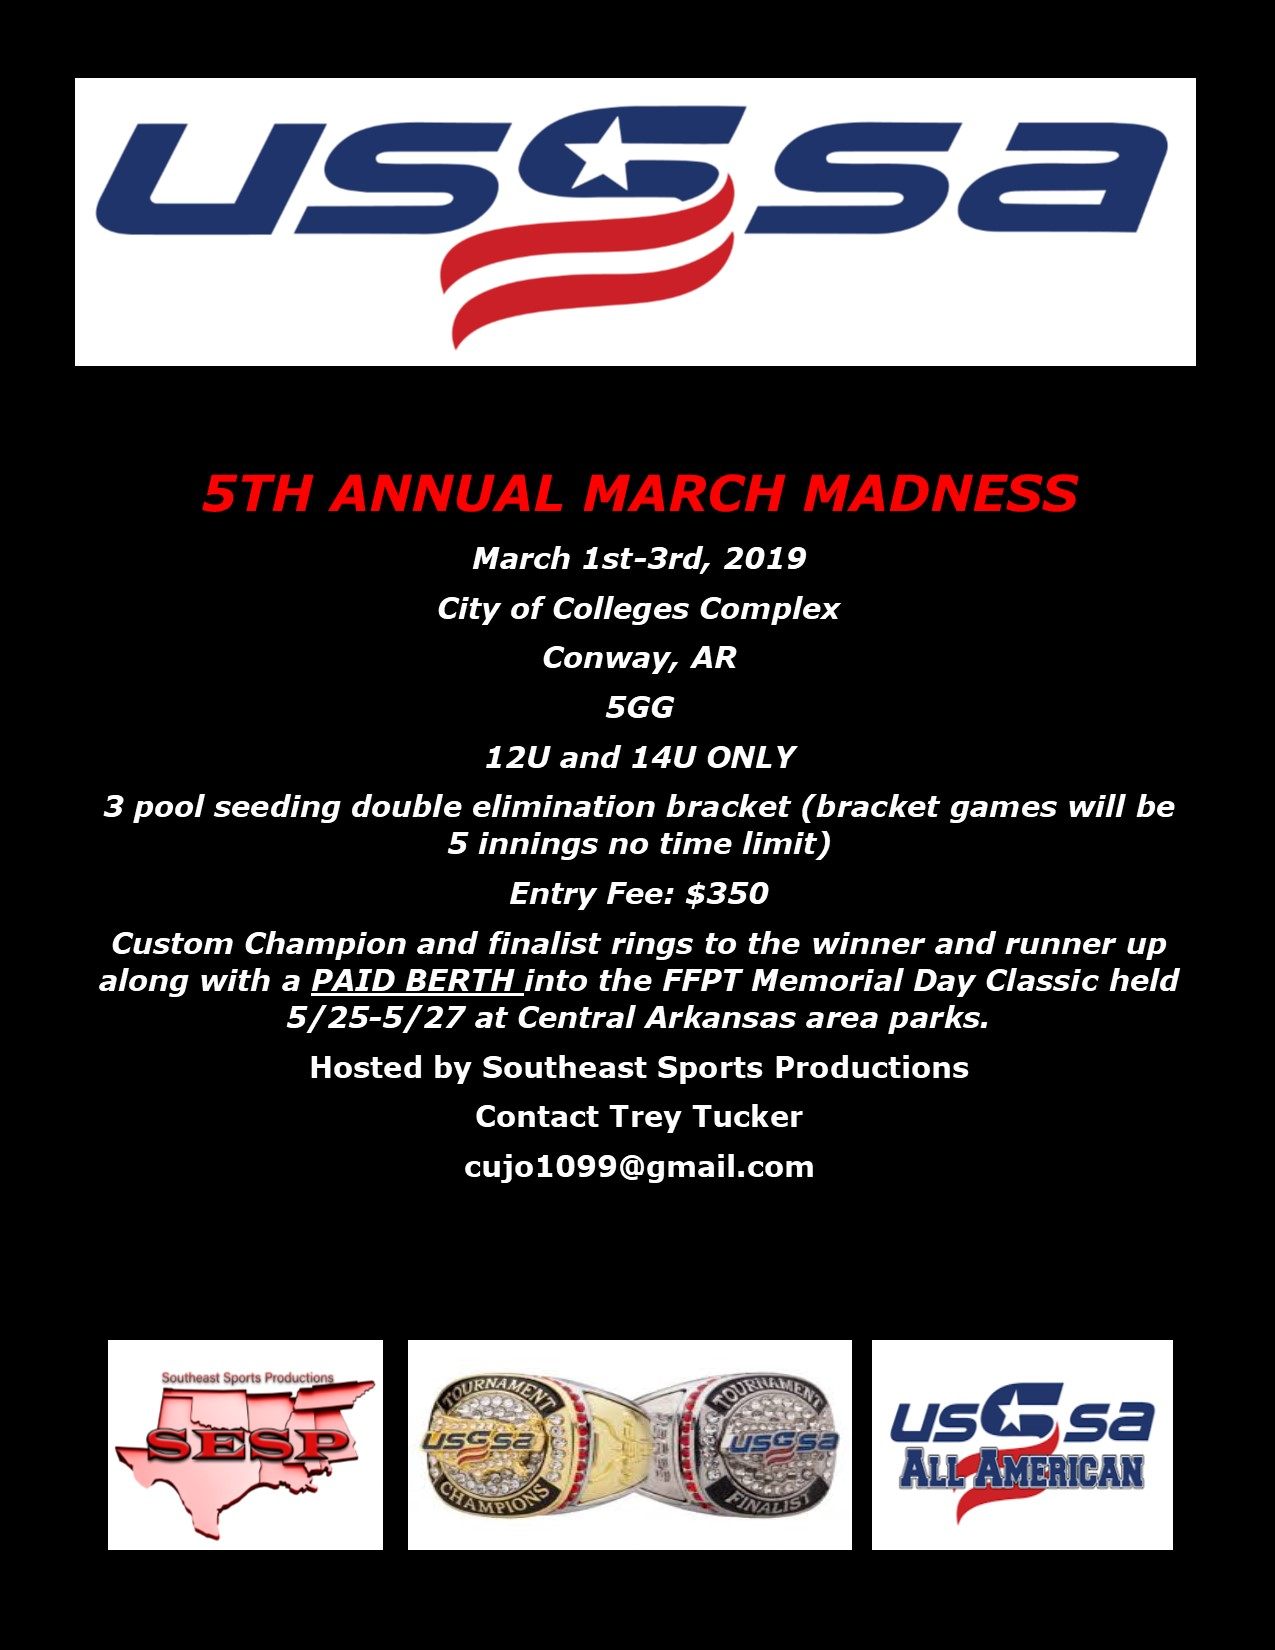 2019 march madness flyer